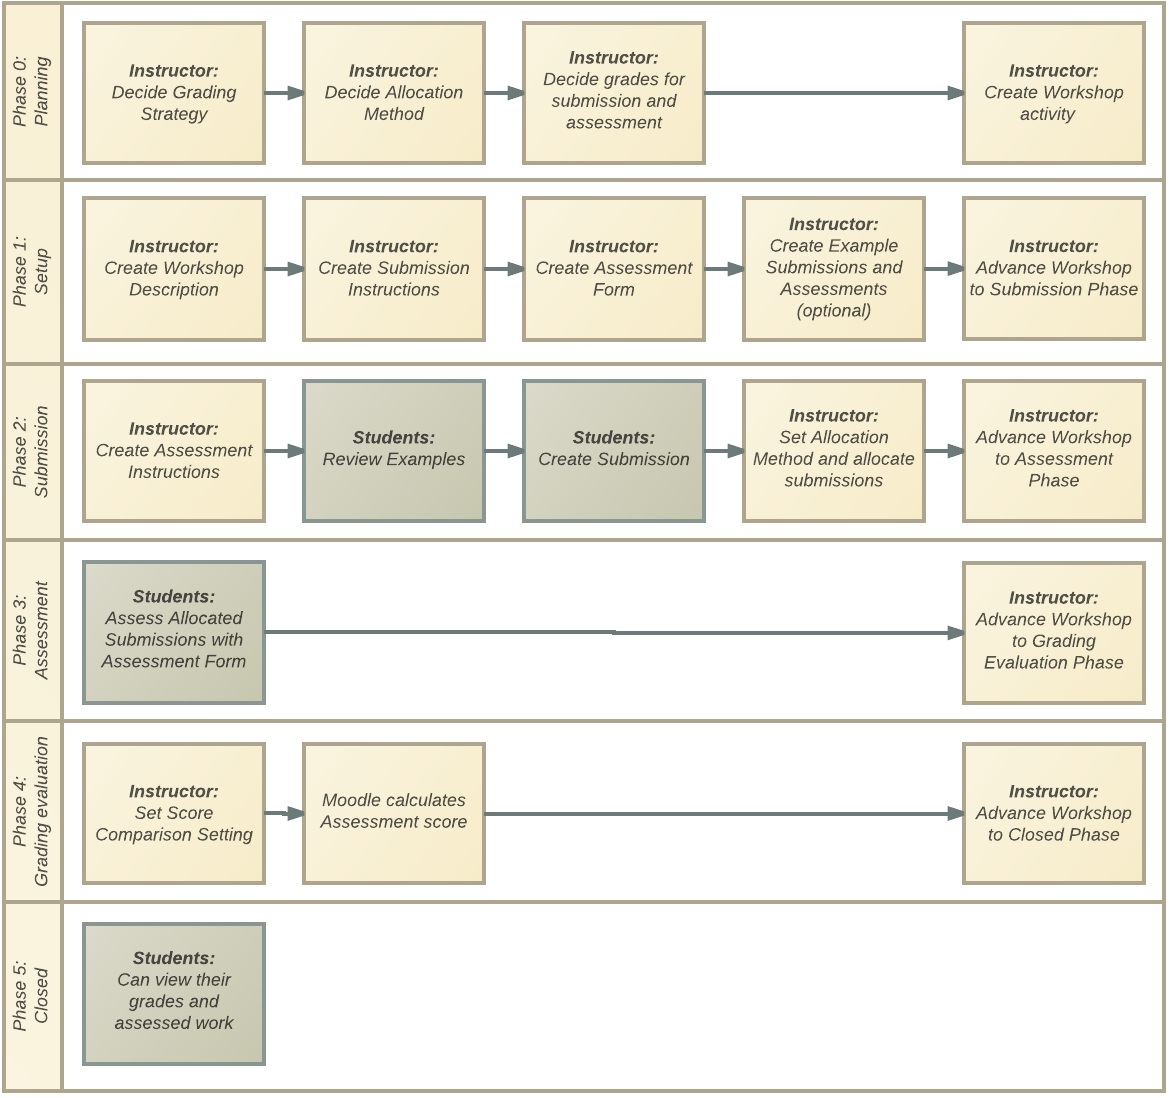 flowchart illustrating sequence of a typical Workshop activity